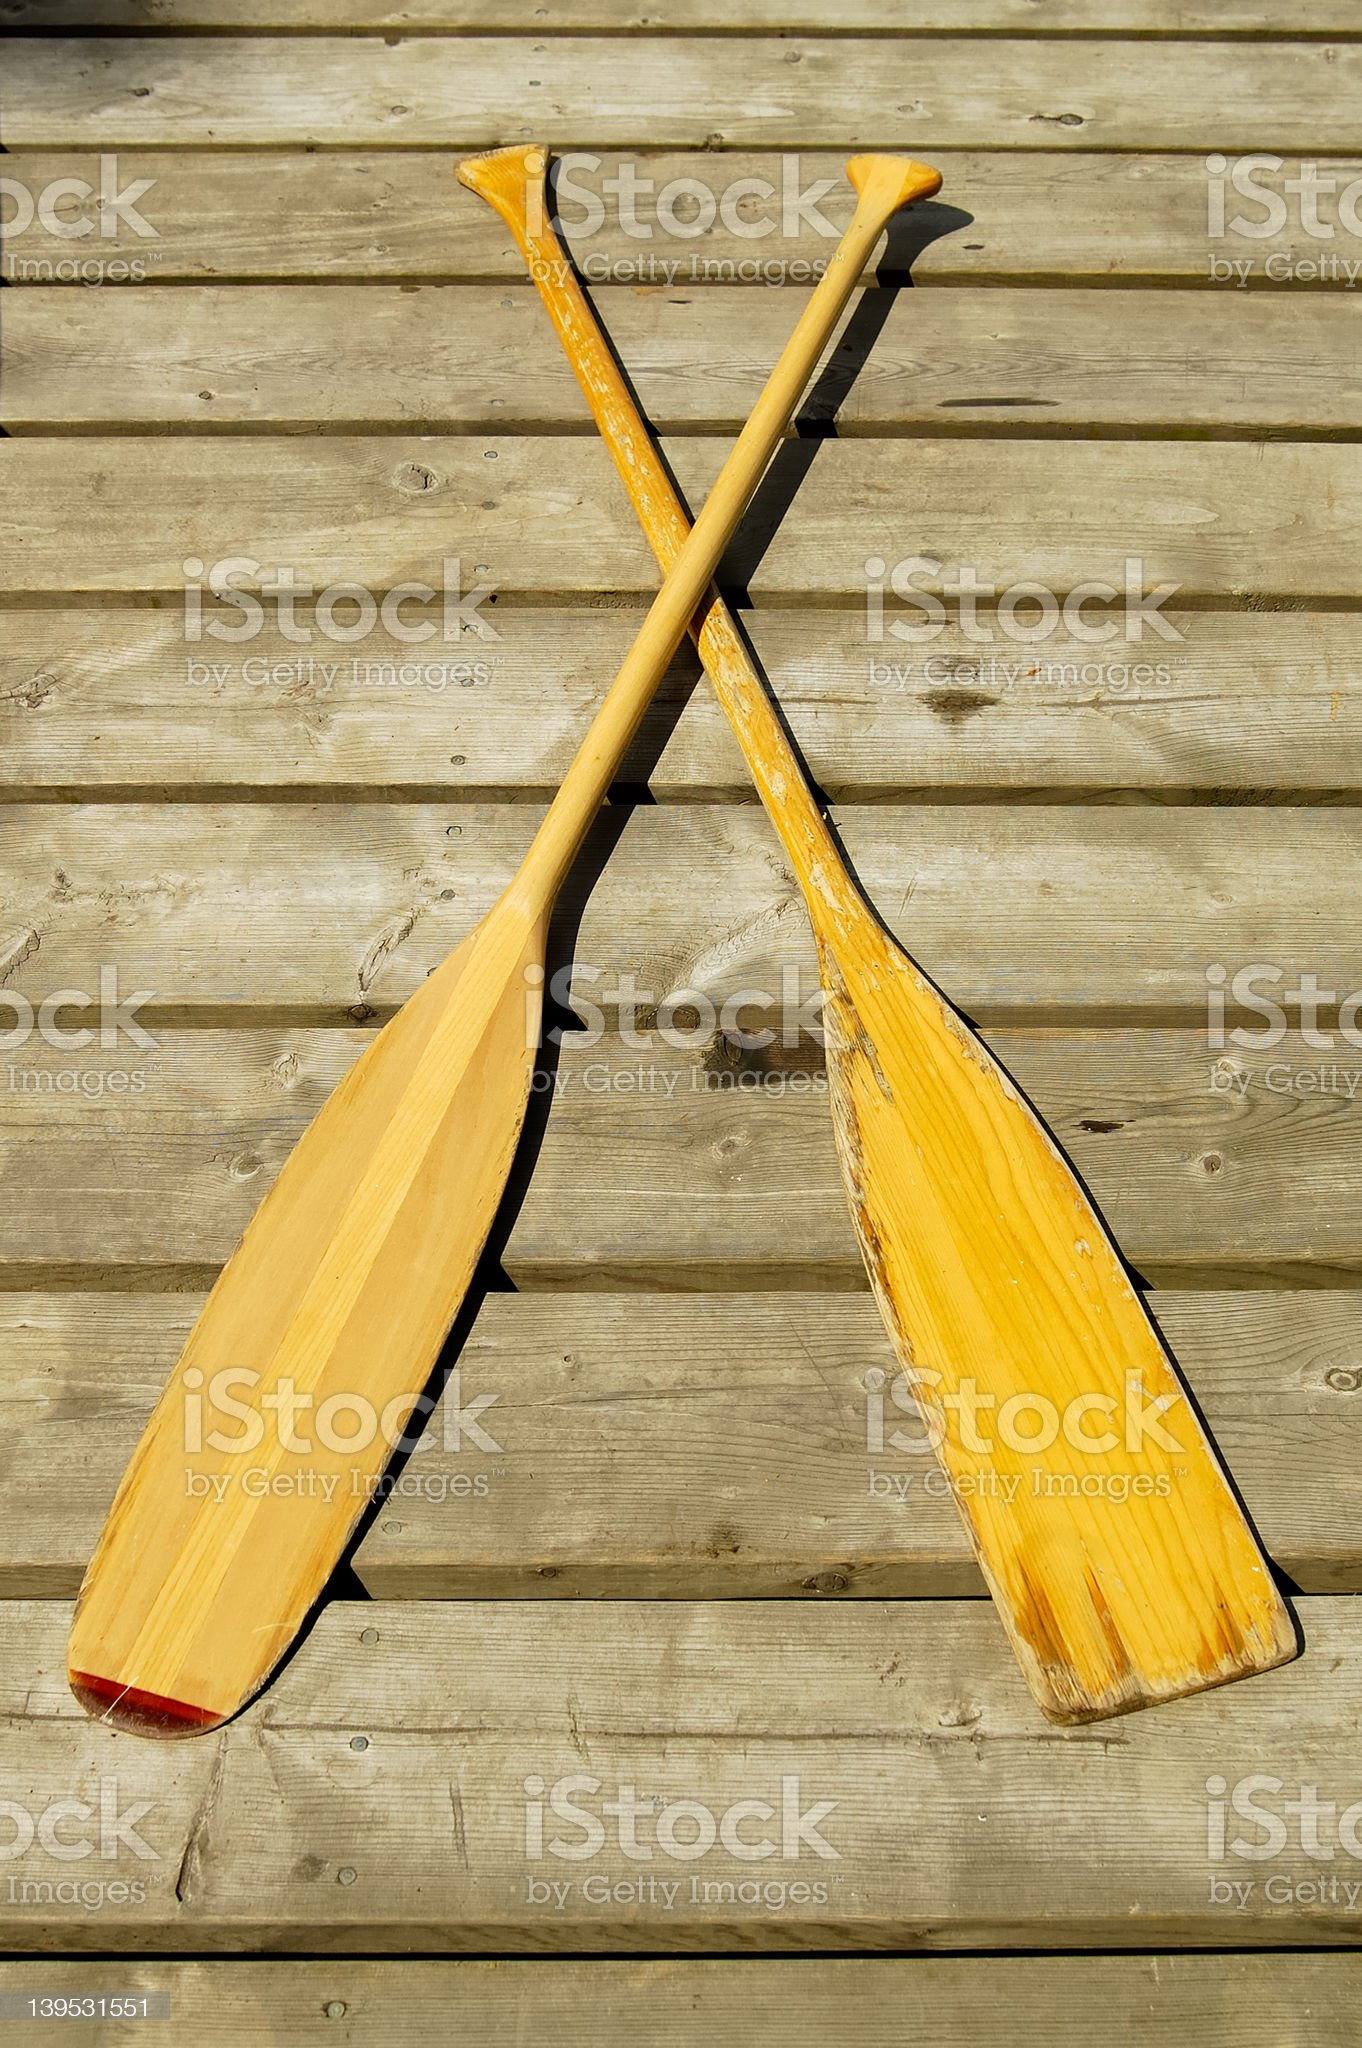 Wooden Paddles royalty-free stock photo